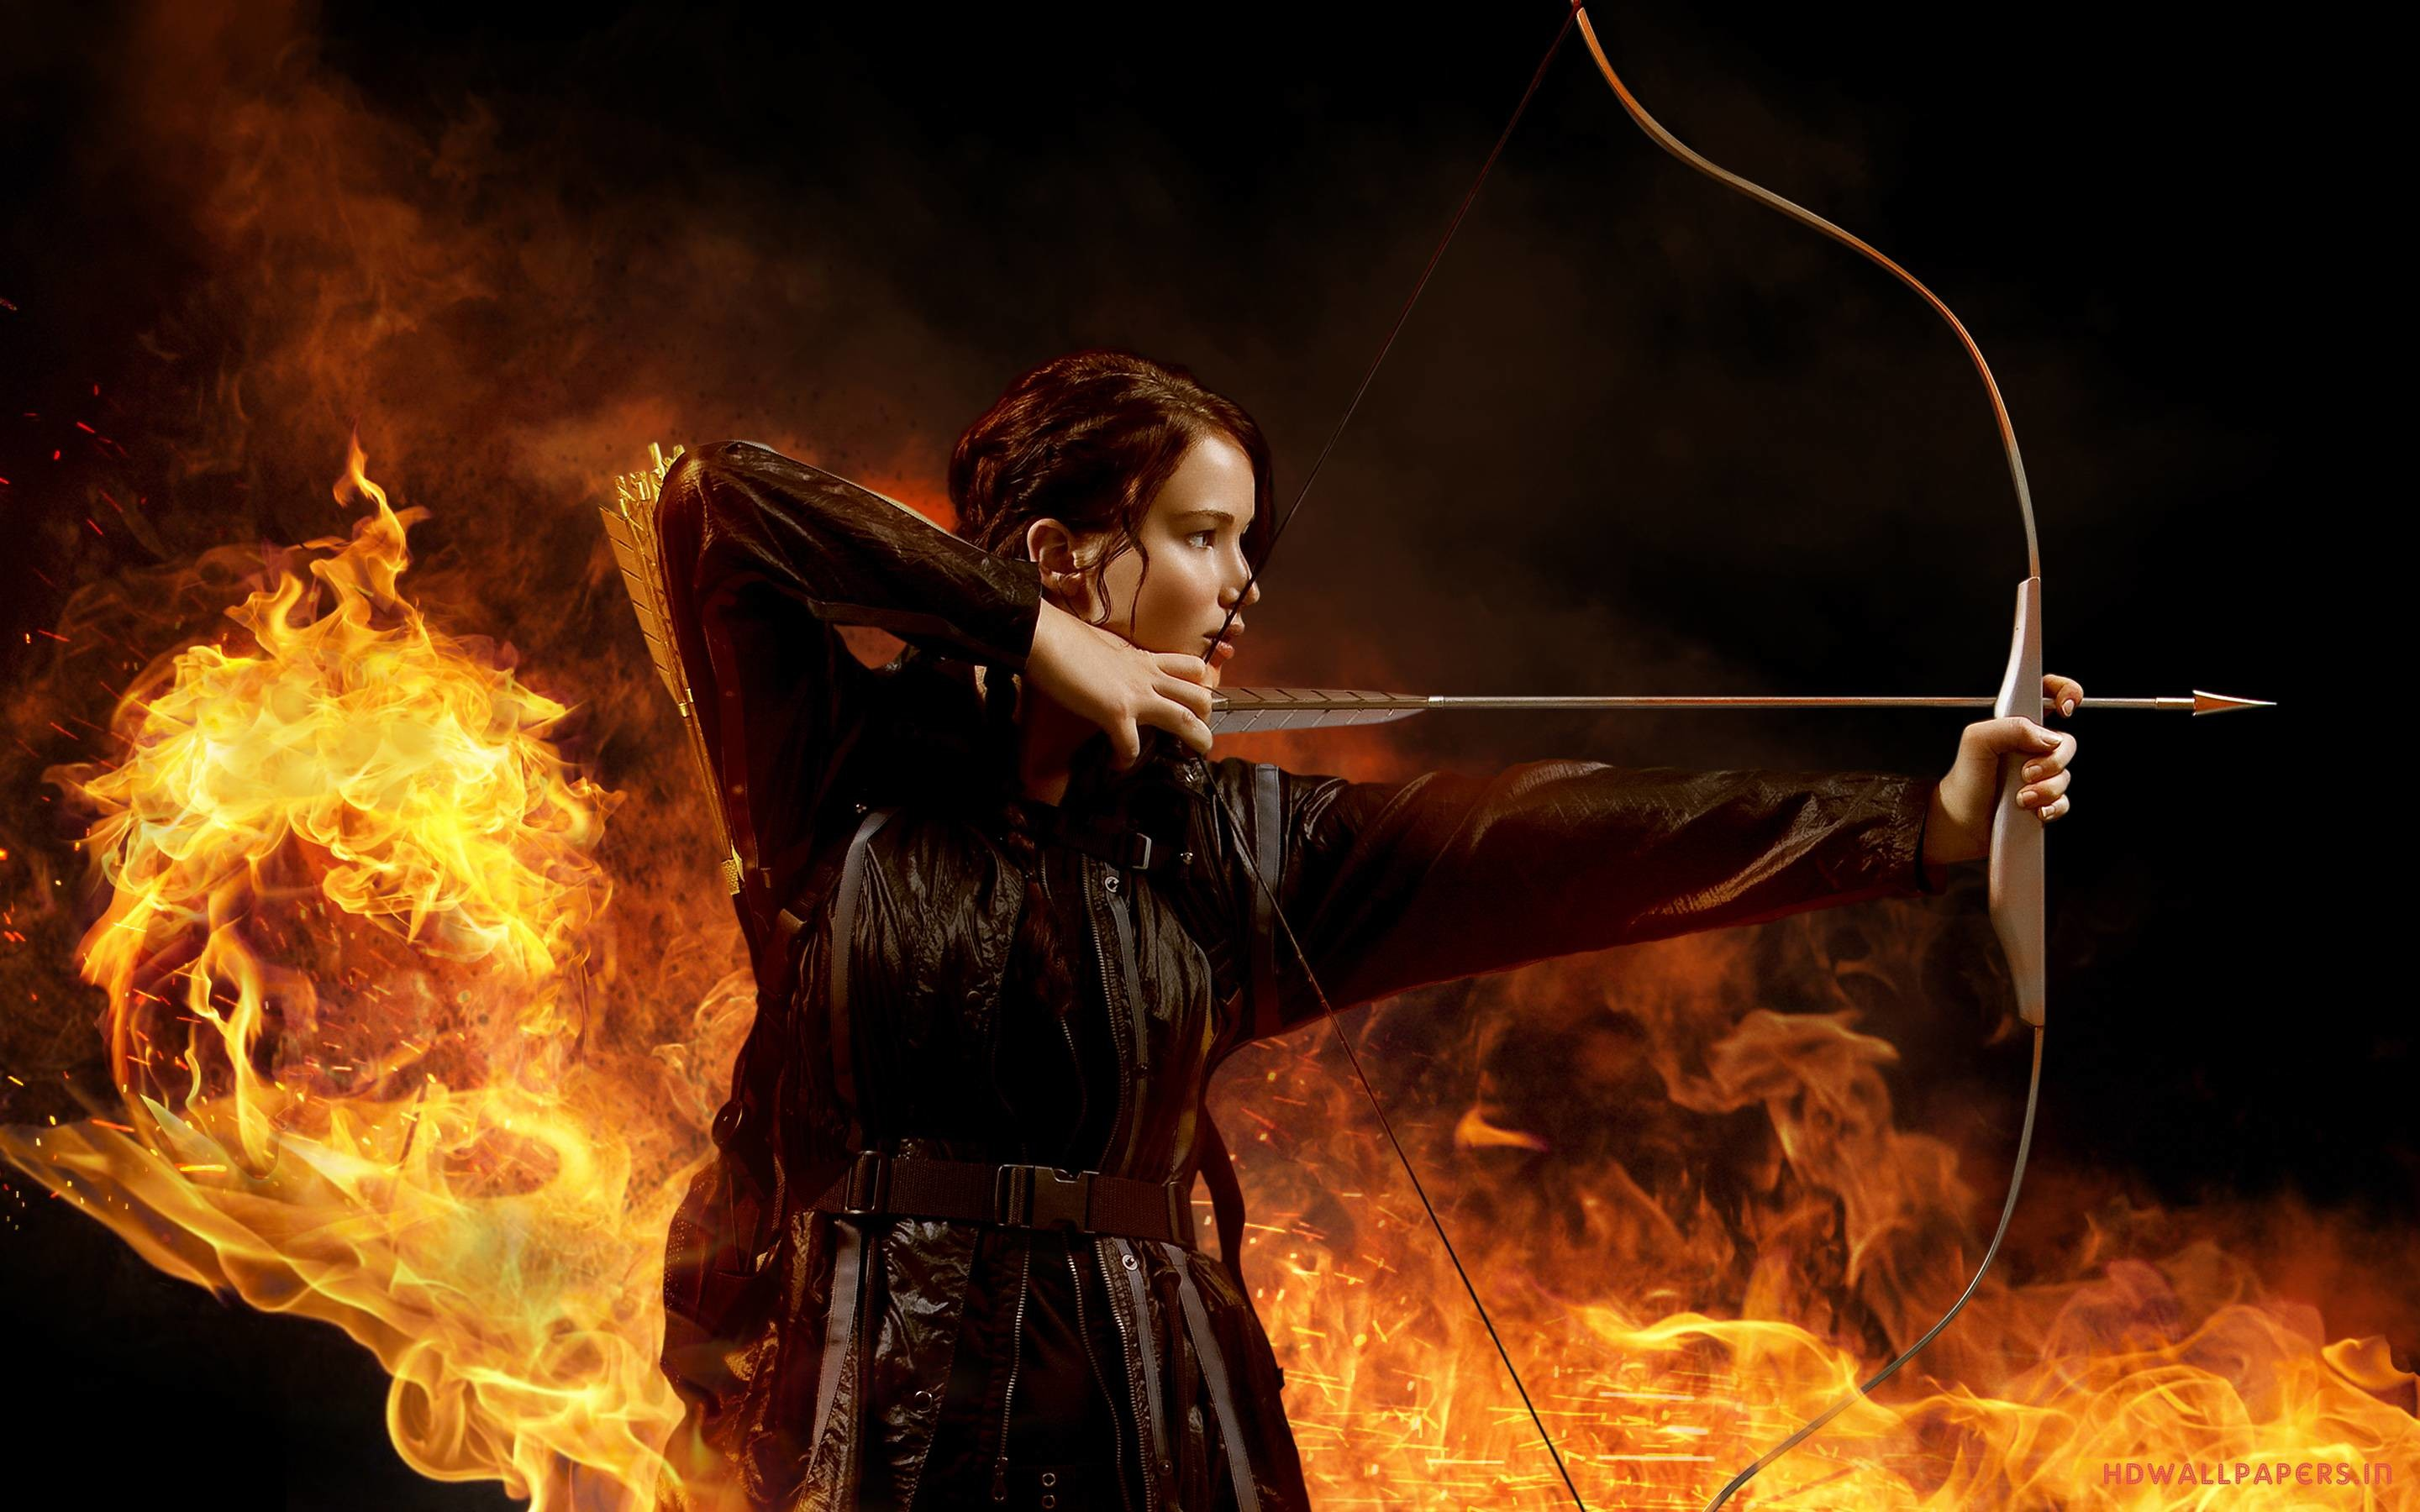 2880x1800 Jennifer Lawrence in The Hunger Games Wallpapers | HD Wallpapers